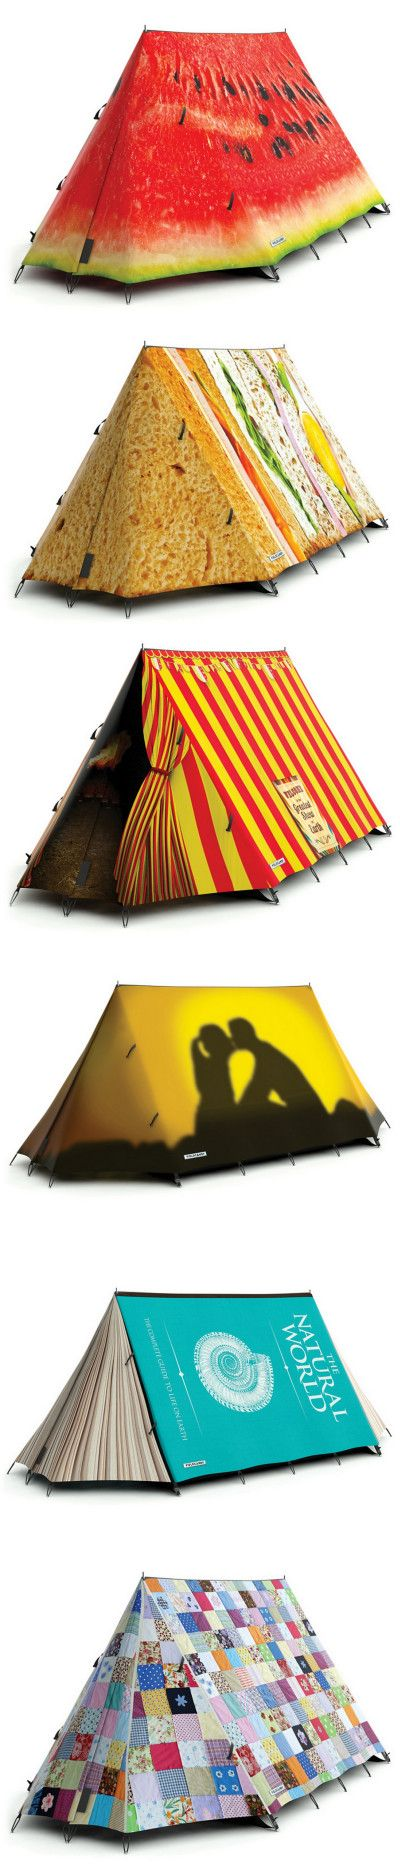 Funny Tents: FieldCandy tents are made to be remarkably easy to put up, and with very little practice it should take less than five minutes  FieldCandy tents are significantly larger than most two person tents, making for a more comfortable and spacious sleeping area.